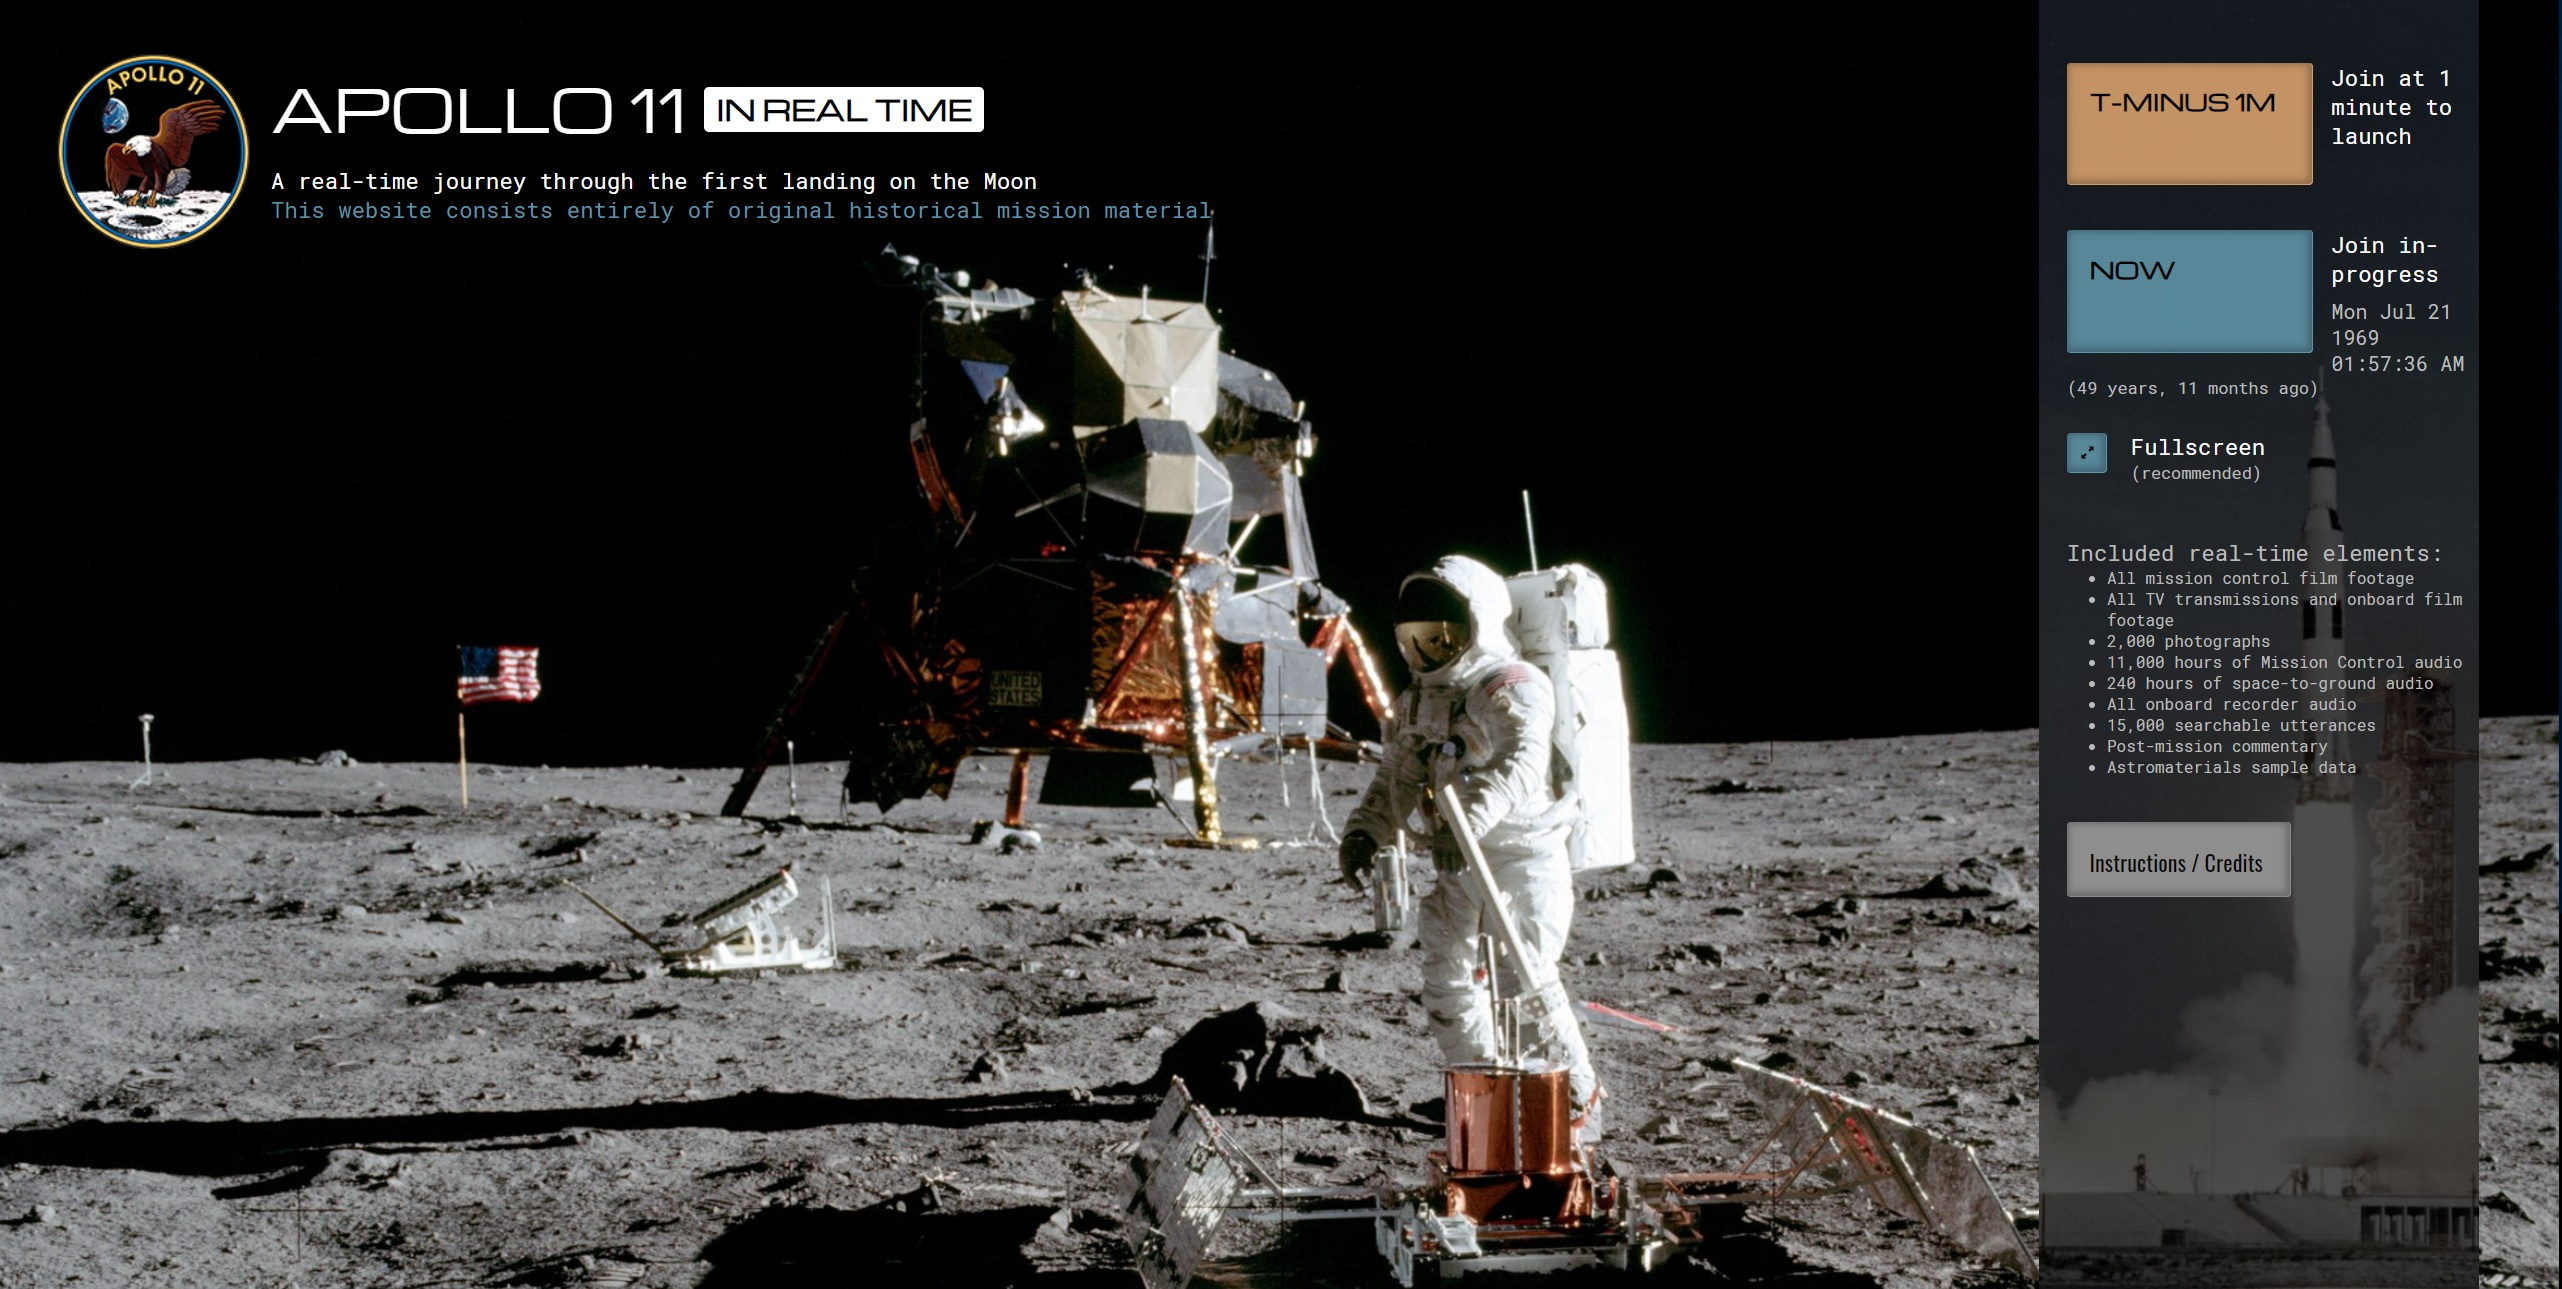 apollo 11 space mission pictures - photo #46